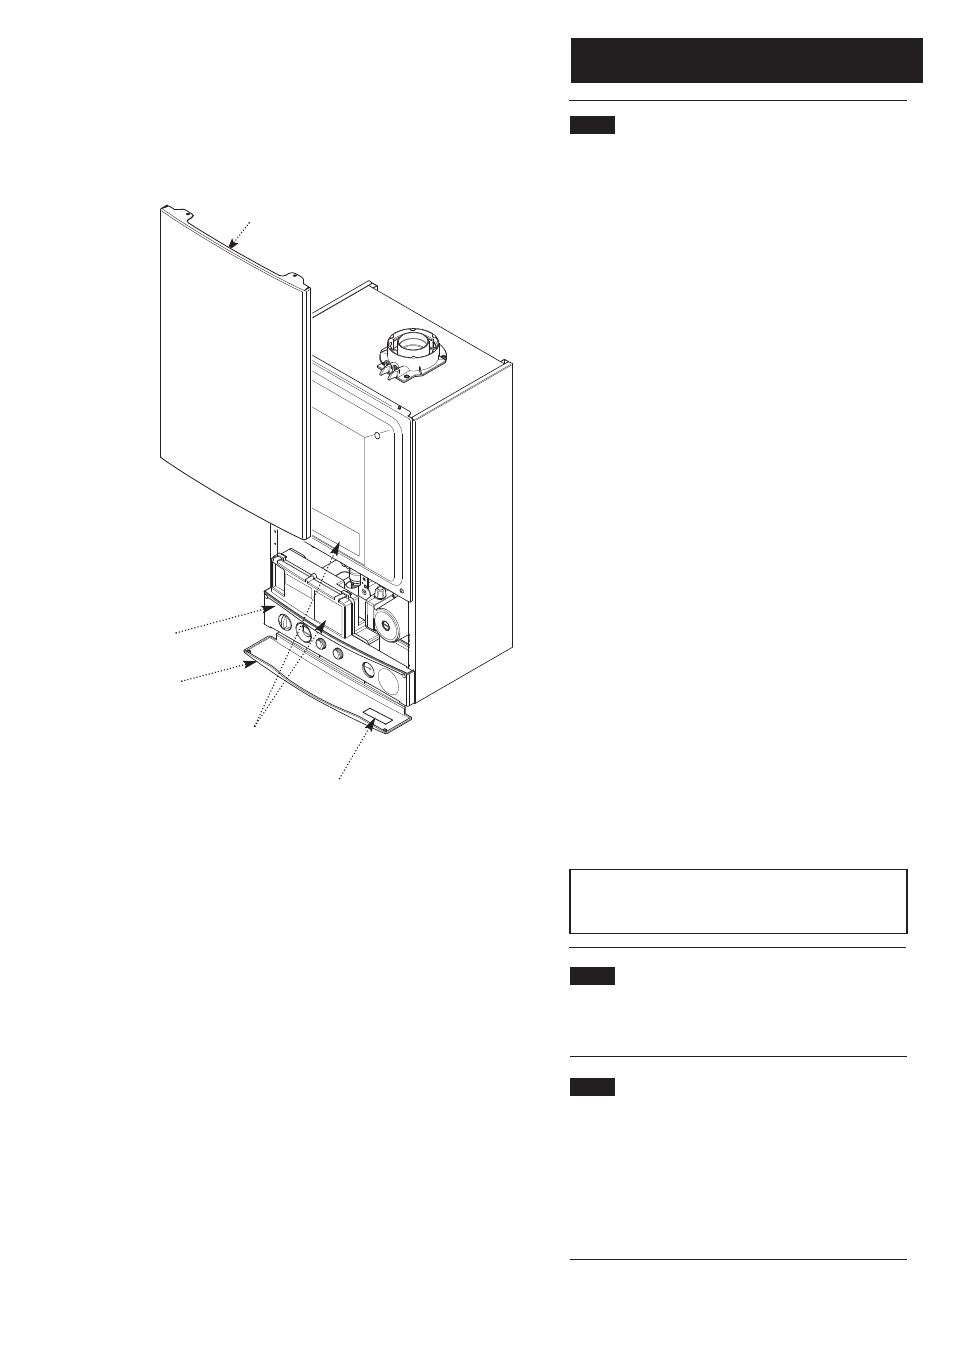 0 introduction baxi potterton heatmax combi he condensing 0 introduction baxi potterton heatmax combi he condensing combination boiler user manual page 7 asfbconference2016 Images